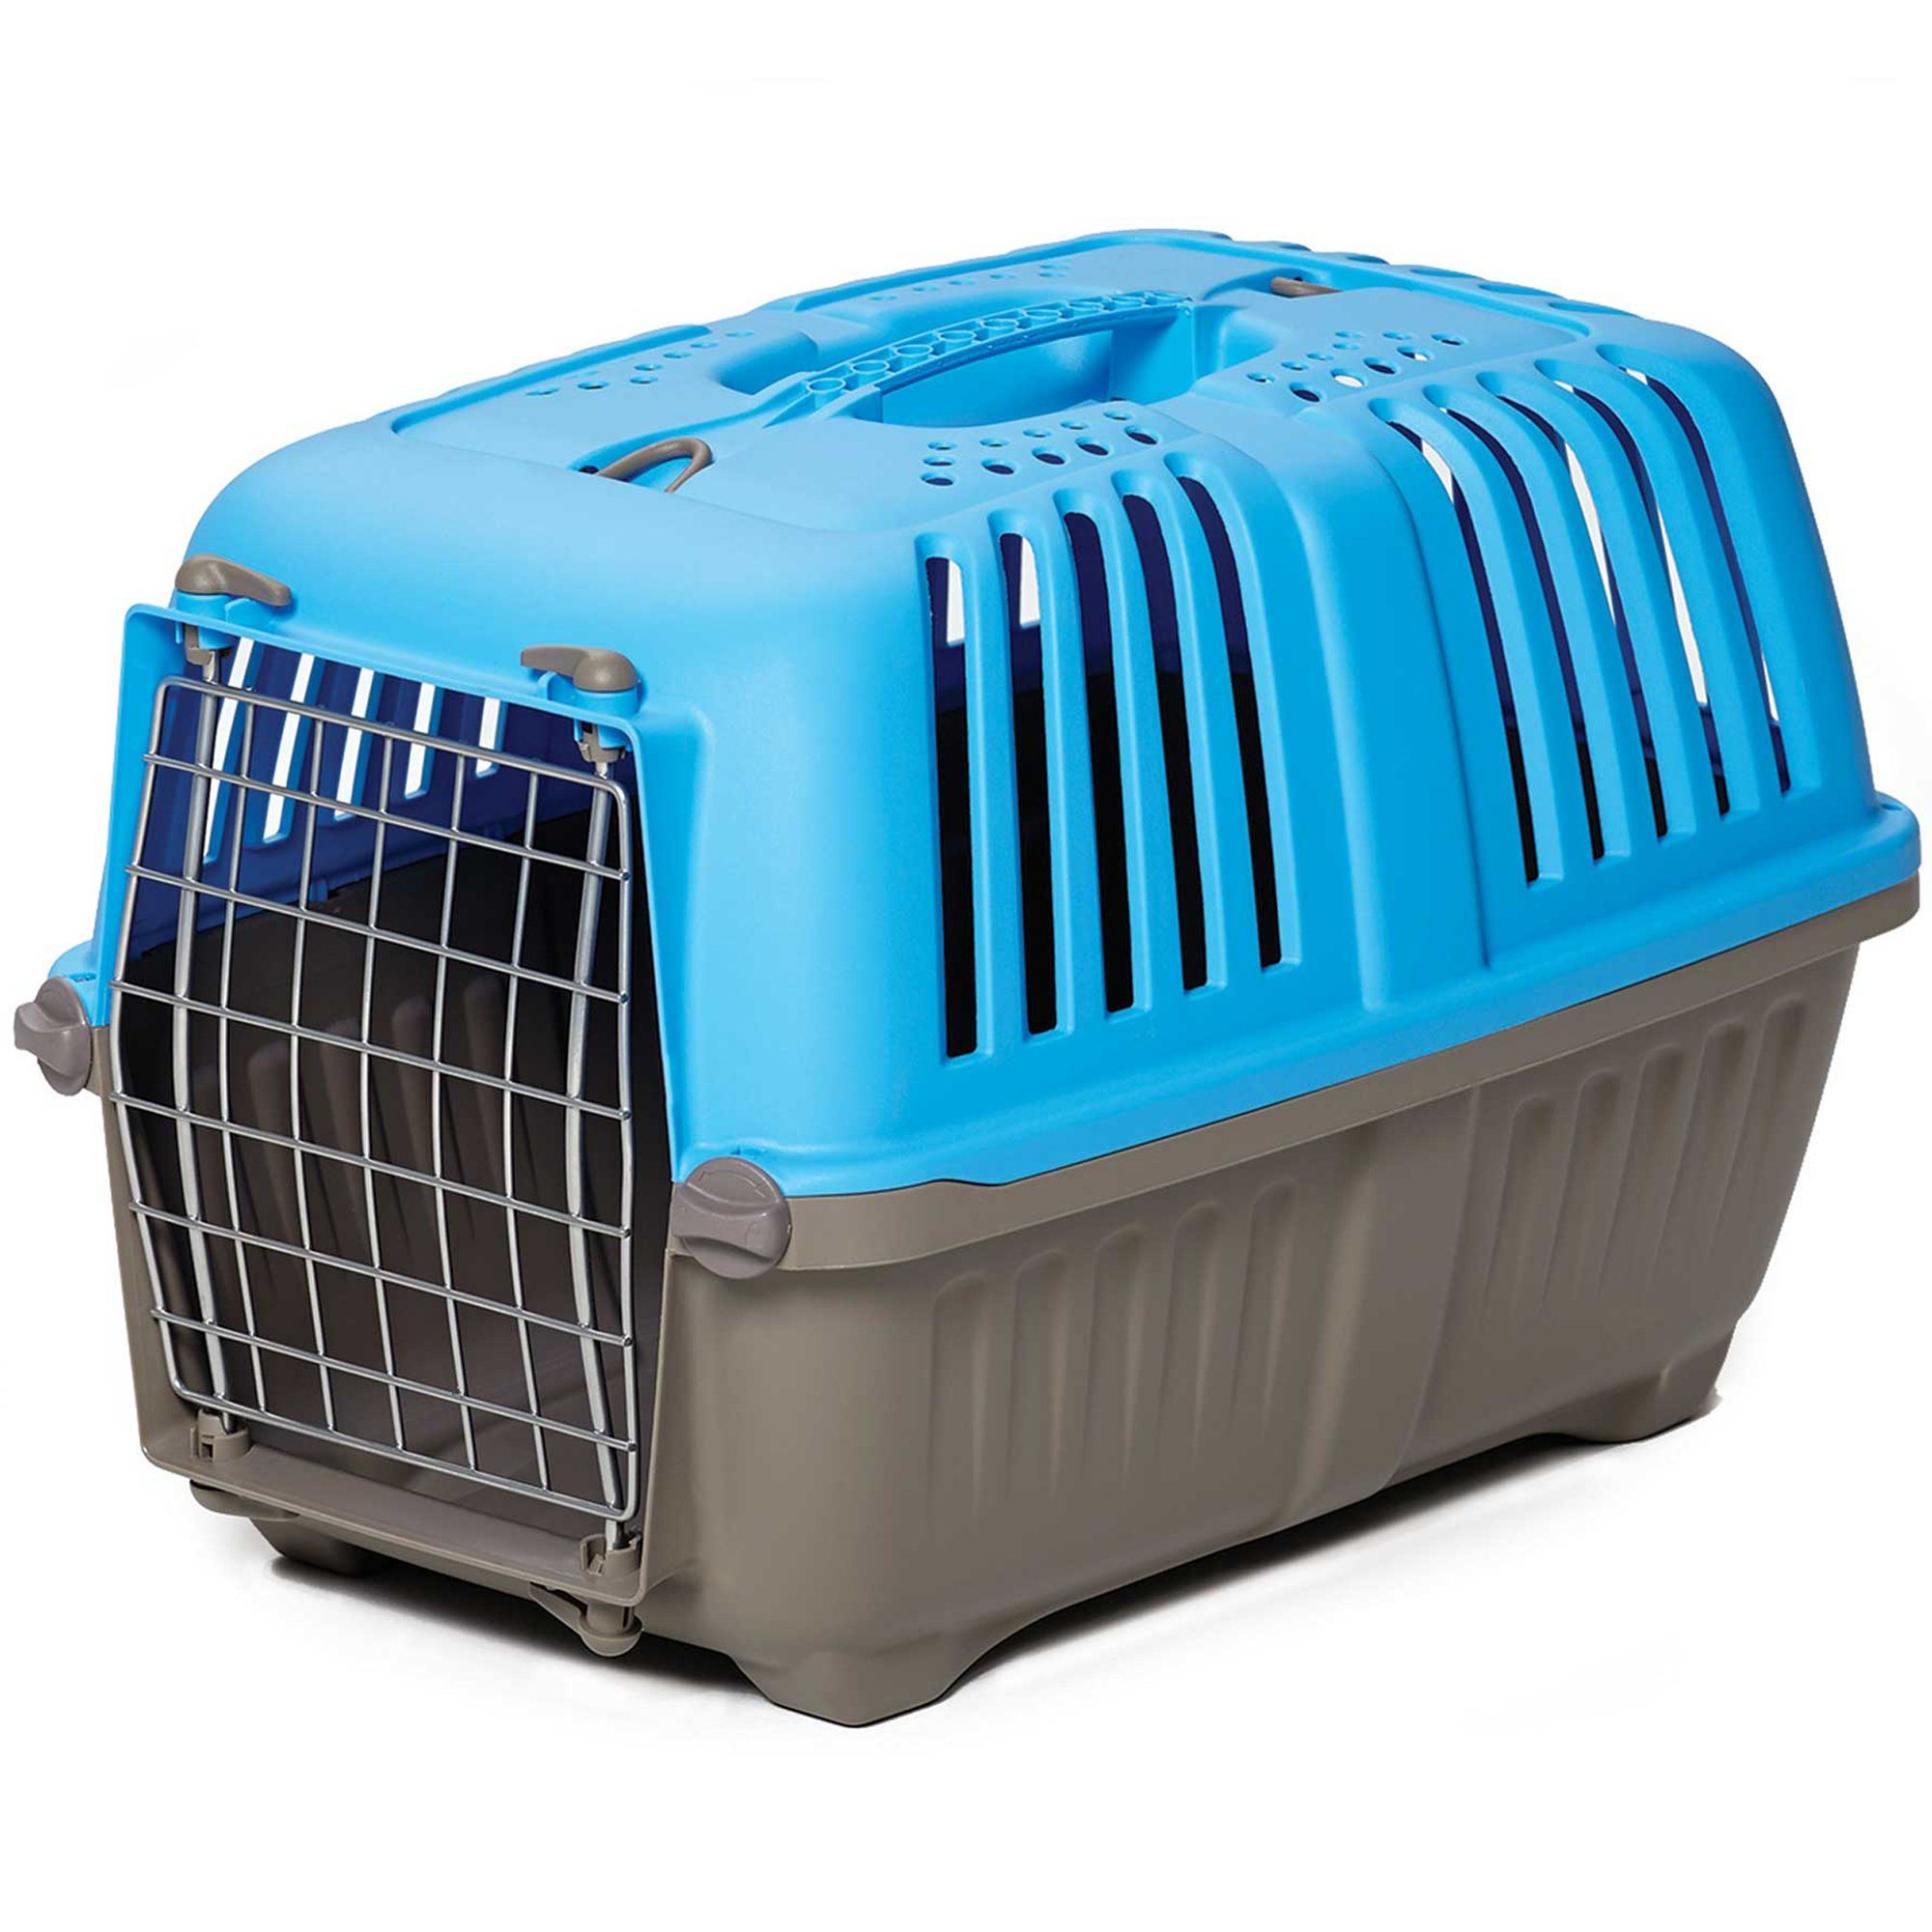 Spree Plastic Carrier Blue 22 L X 14 W X 14 H Small Pet Carriers Puppy Carrier Cat Carrier